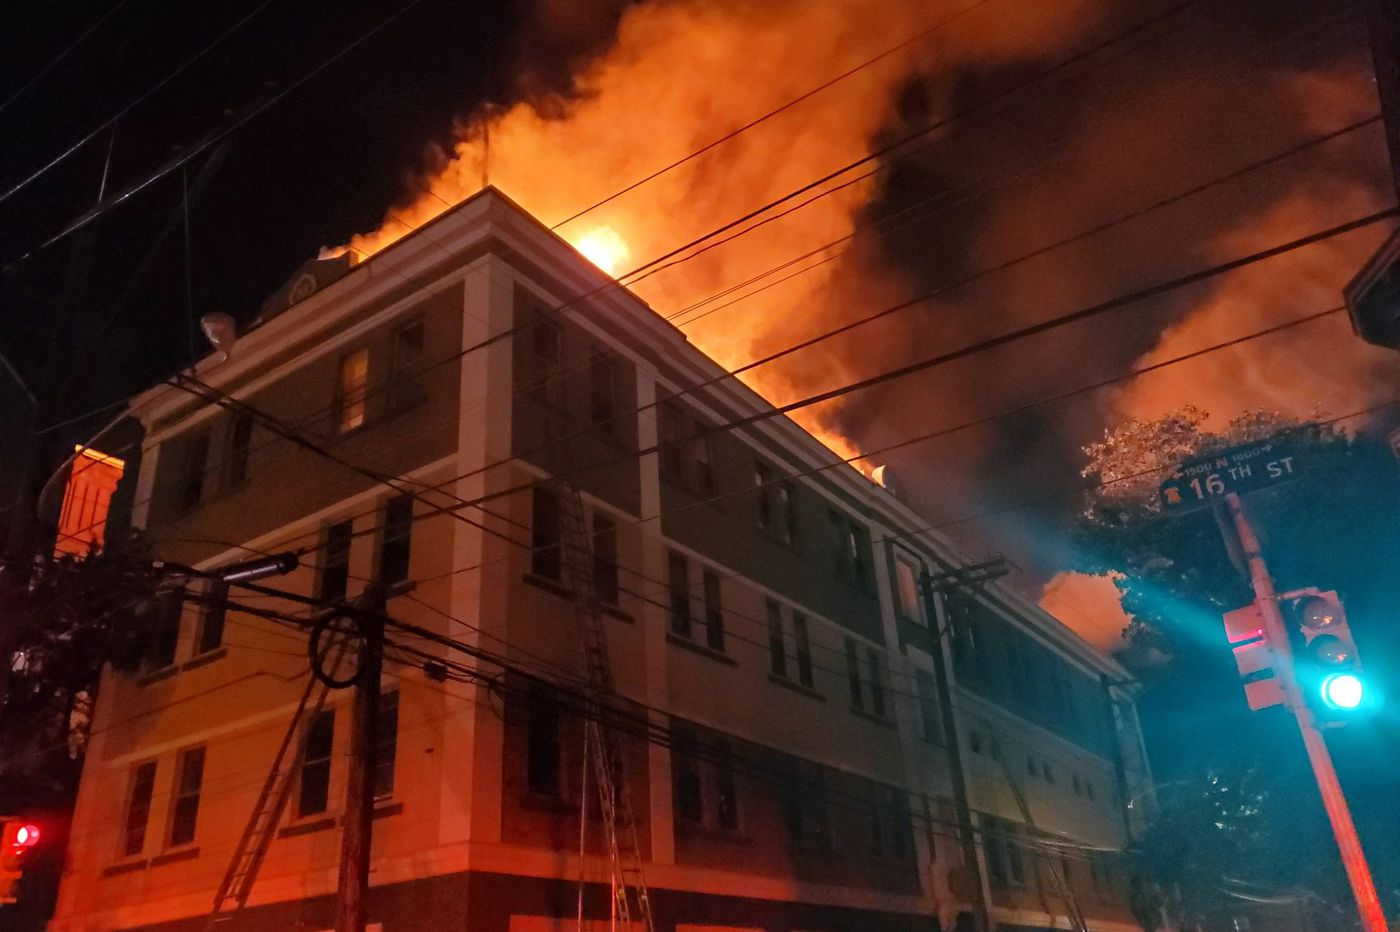 3-alarm fire erupts at 16th and Oxford Streets near Temple University